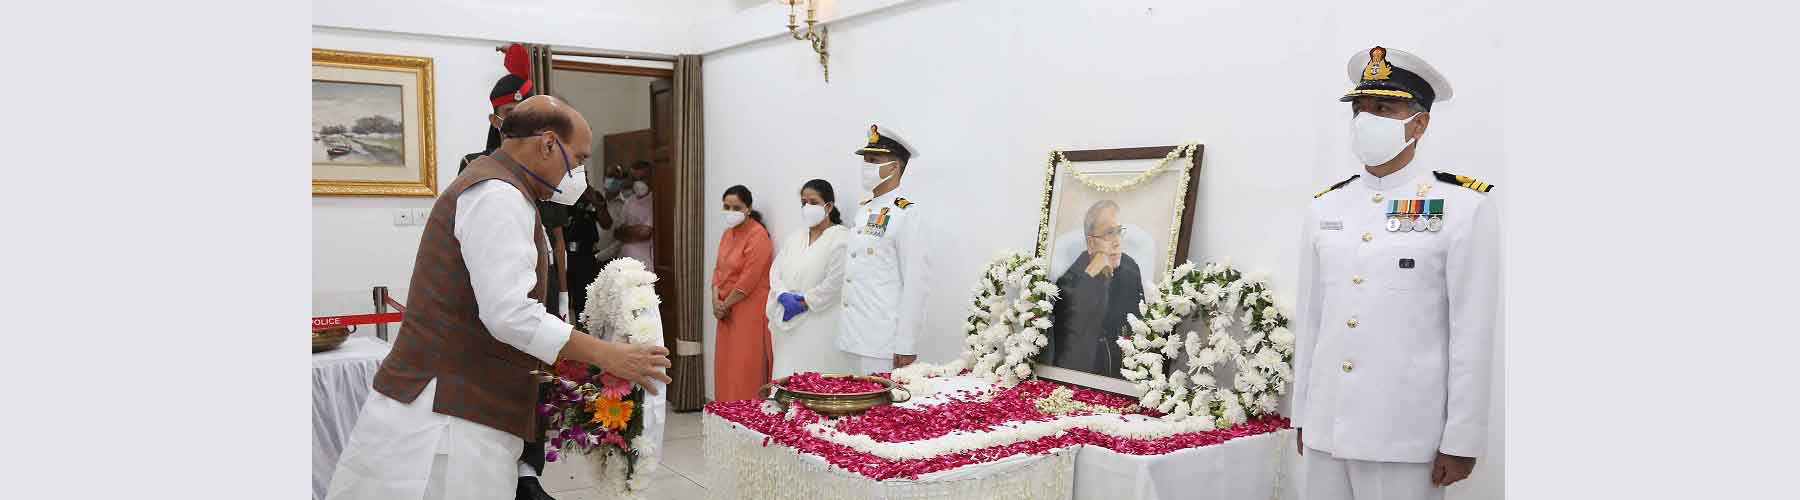 Raksha Mantri Shri Rajnath Singh paying his last respects to former President Pranab Mukherjee in New Delhi on Tuesday, September 1, 2020